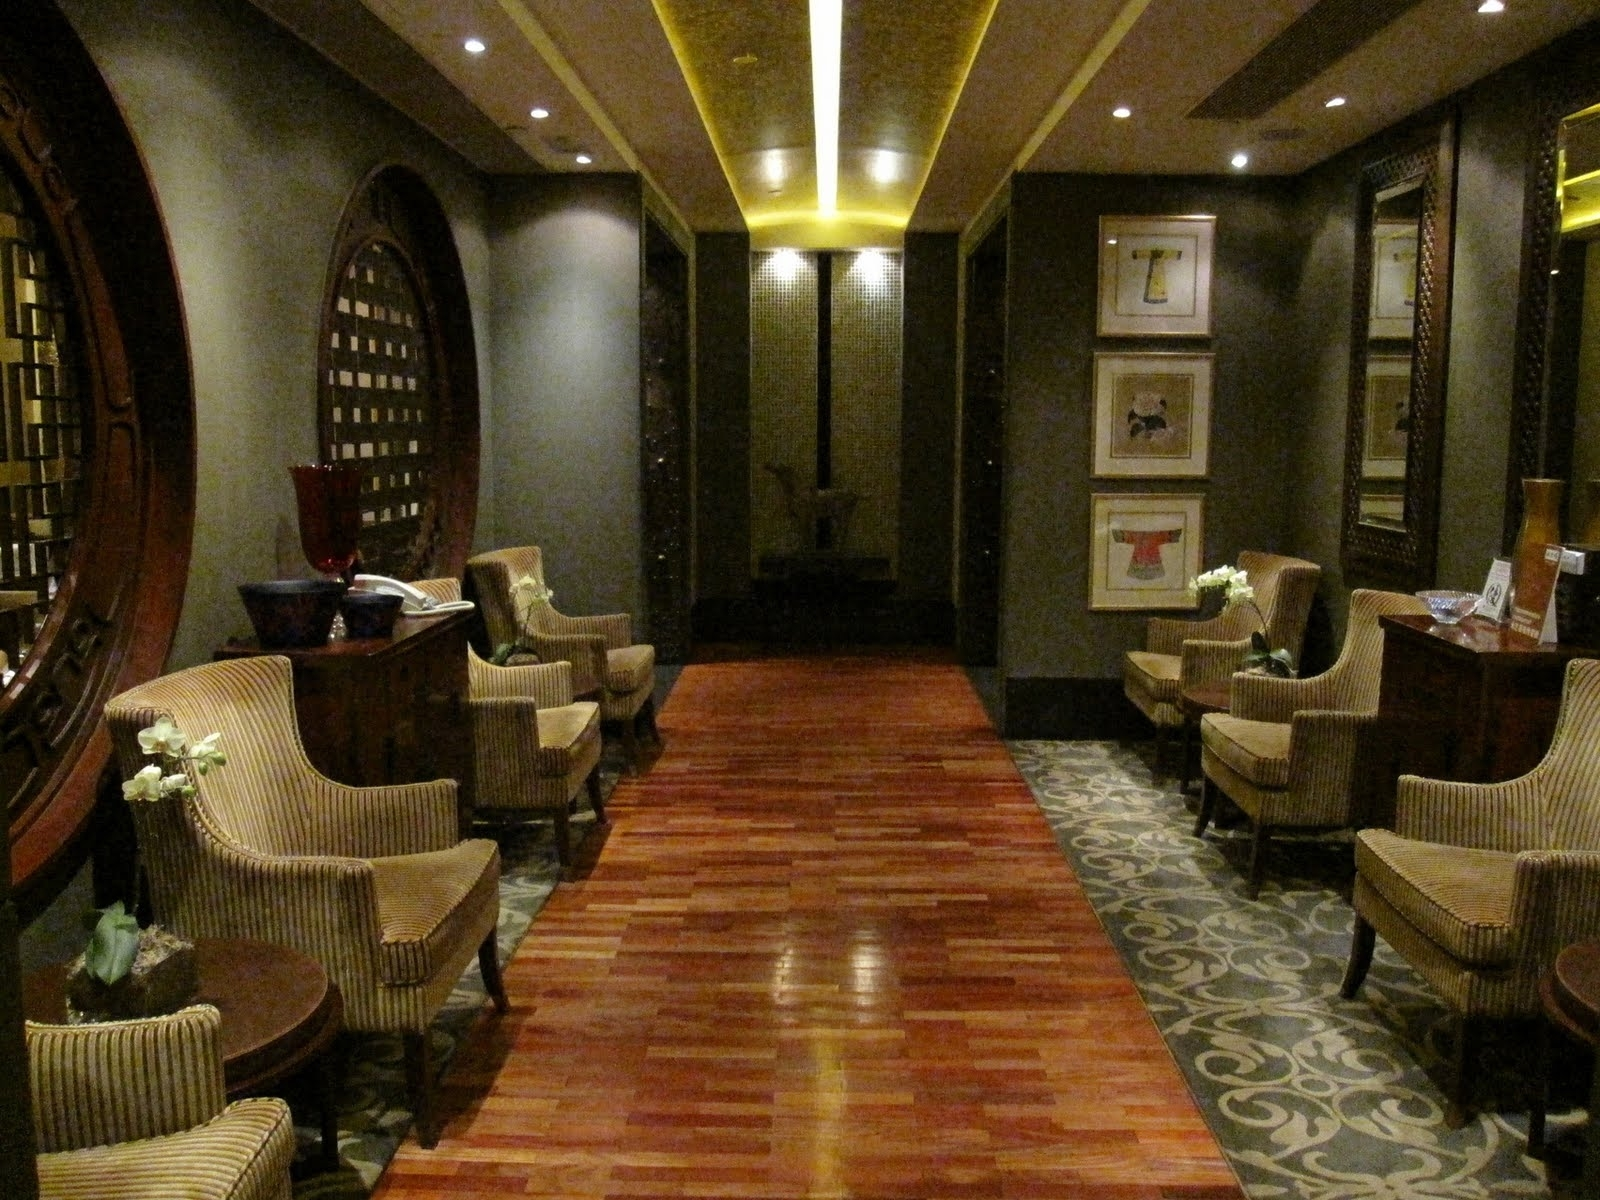 Fashion Pulis: My Favorite Restaurant In Hk: Peking Garden with Peking Garden Restaurant (Alexandra House)